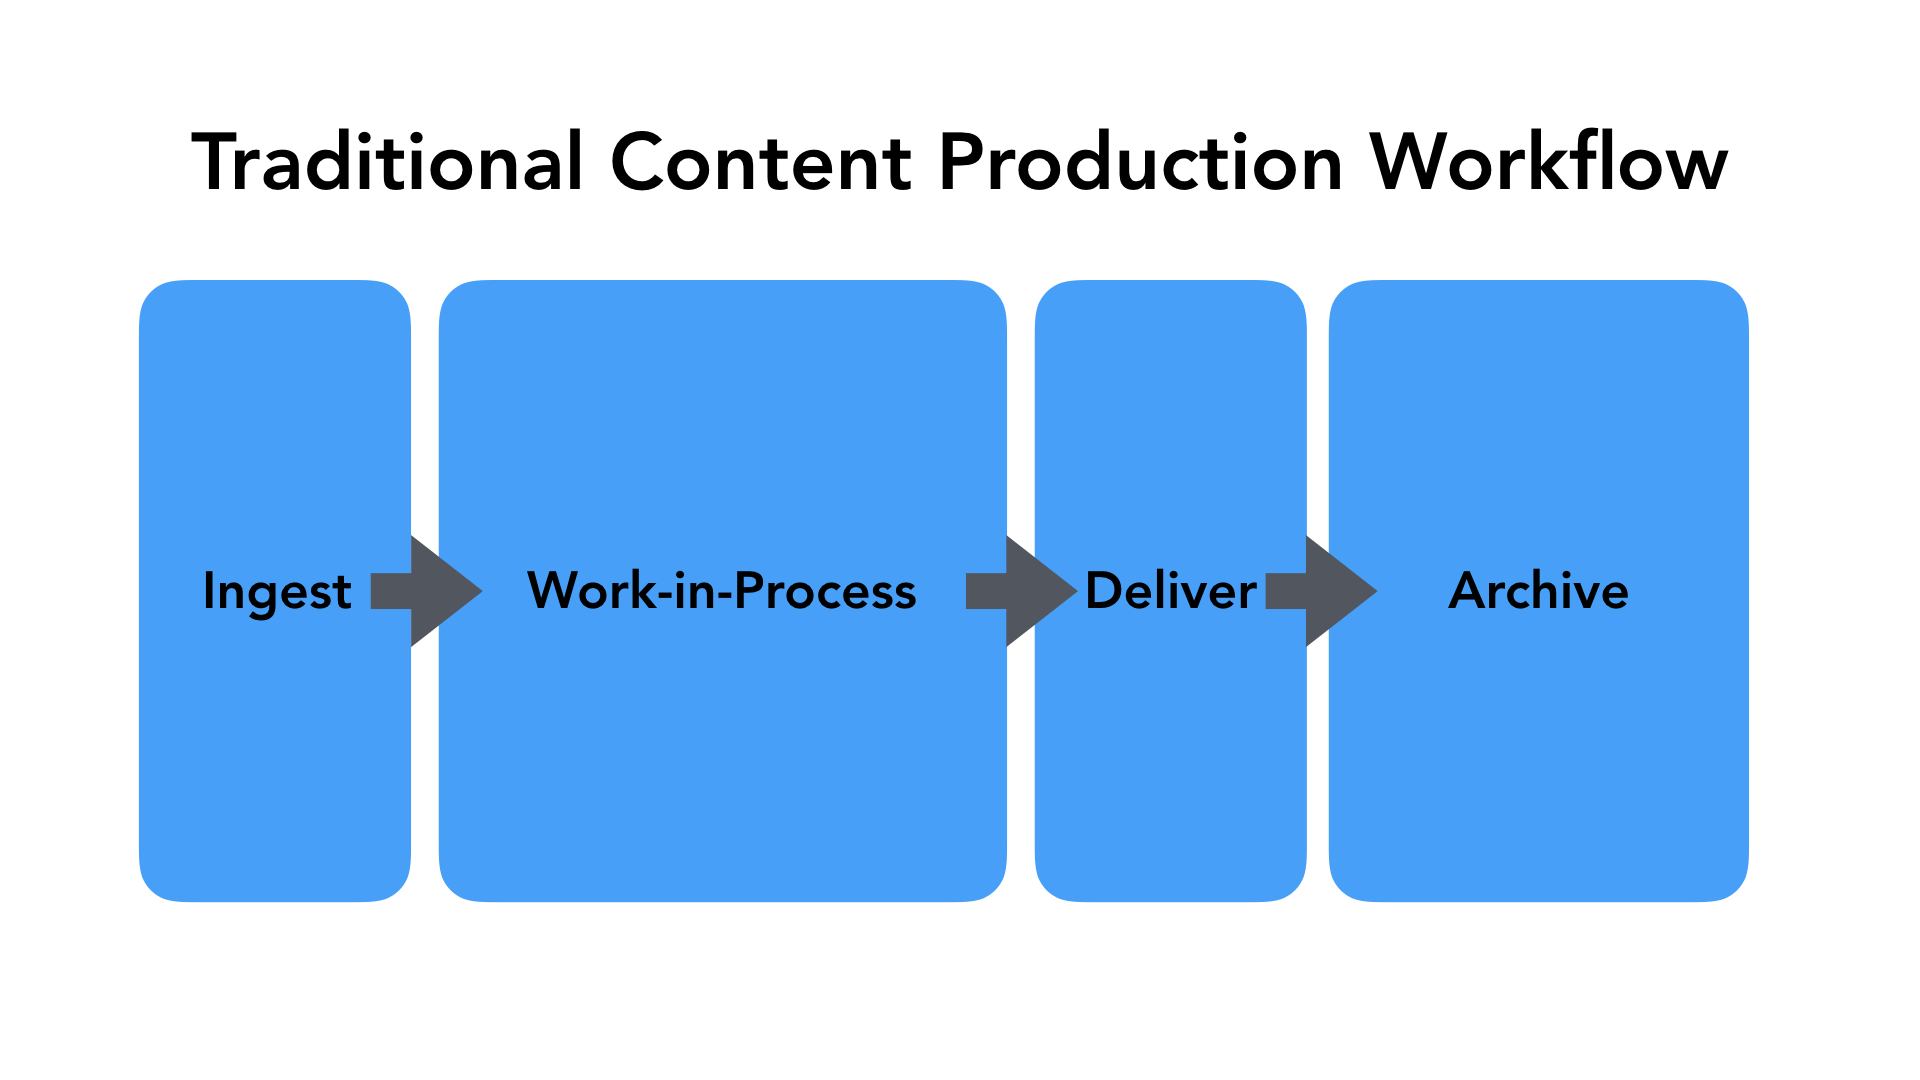 Traditional Content Production Workflow - Ingest > Work-in-Process > Deliver > Archive